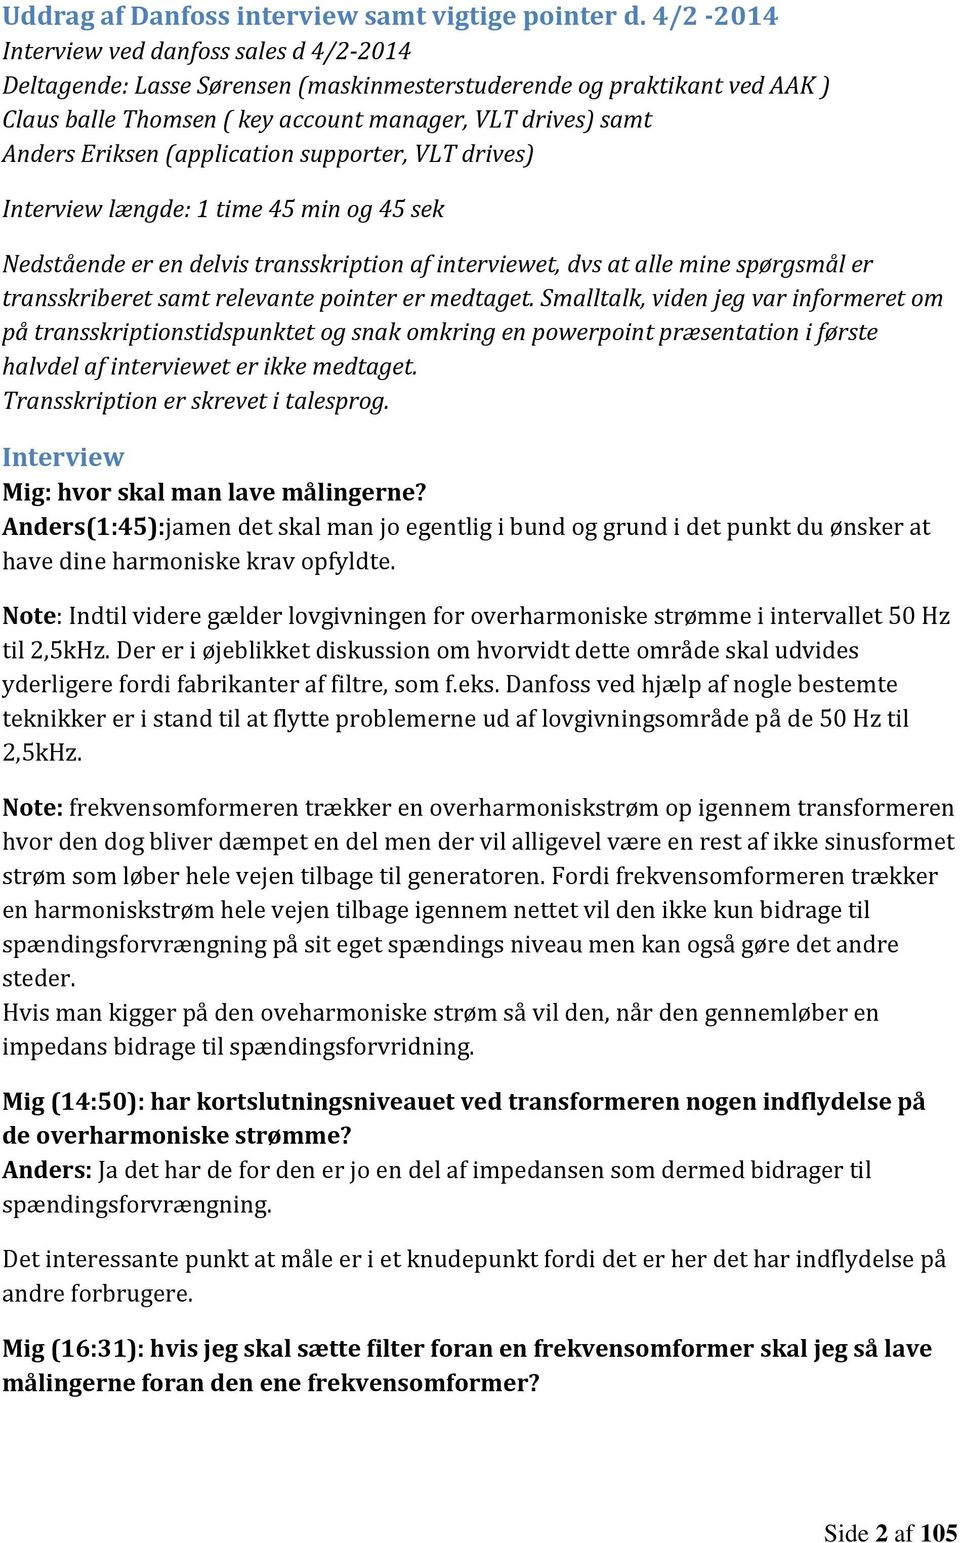 (application supporter, VLT drives) Interview længde: 1 time 45 min og 45 sek Nedstående er en delvis transskription af interviewet, dvs at alle mine spørgsmål er transskriberet samt relevante